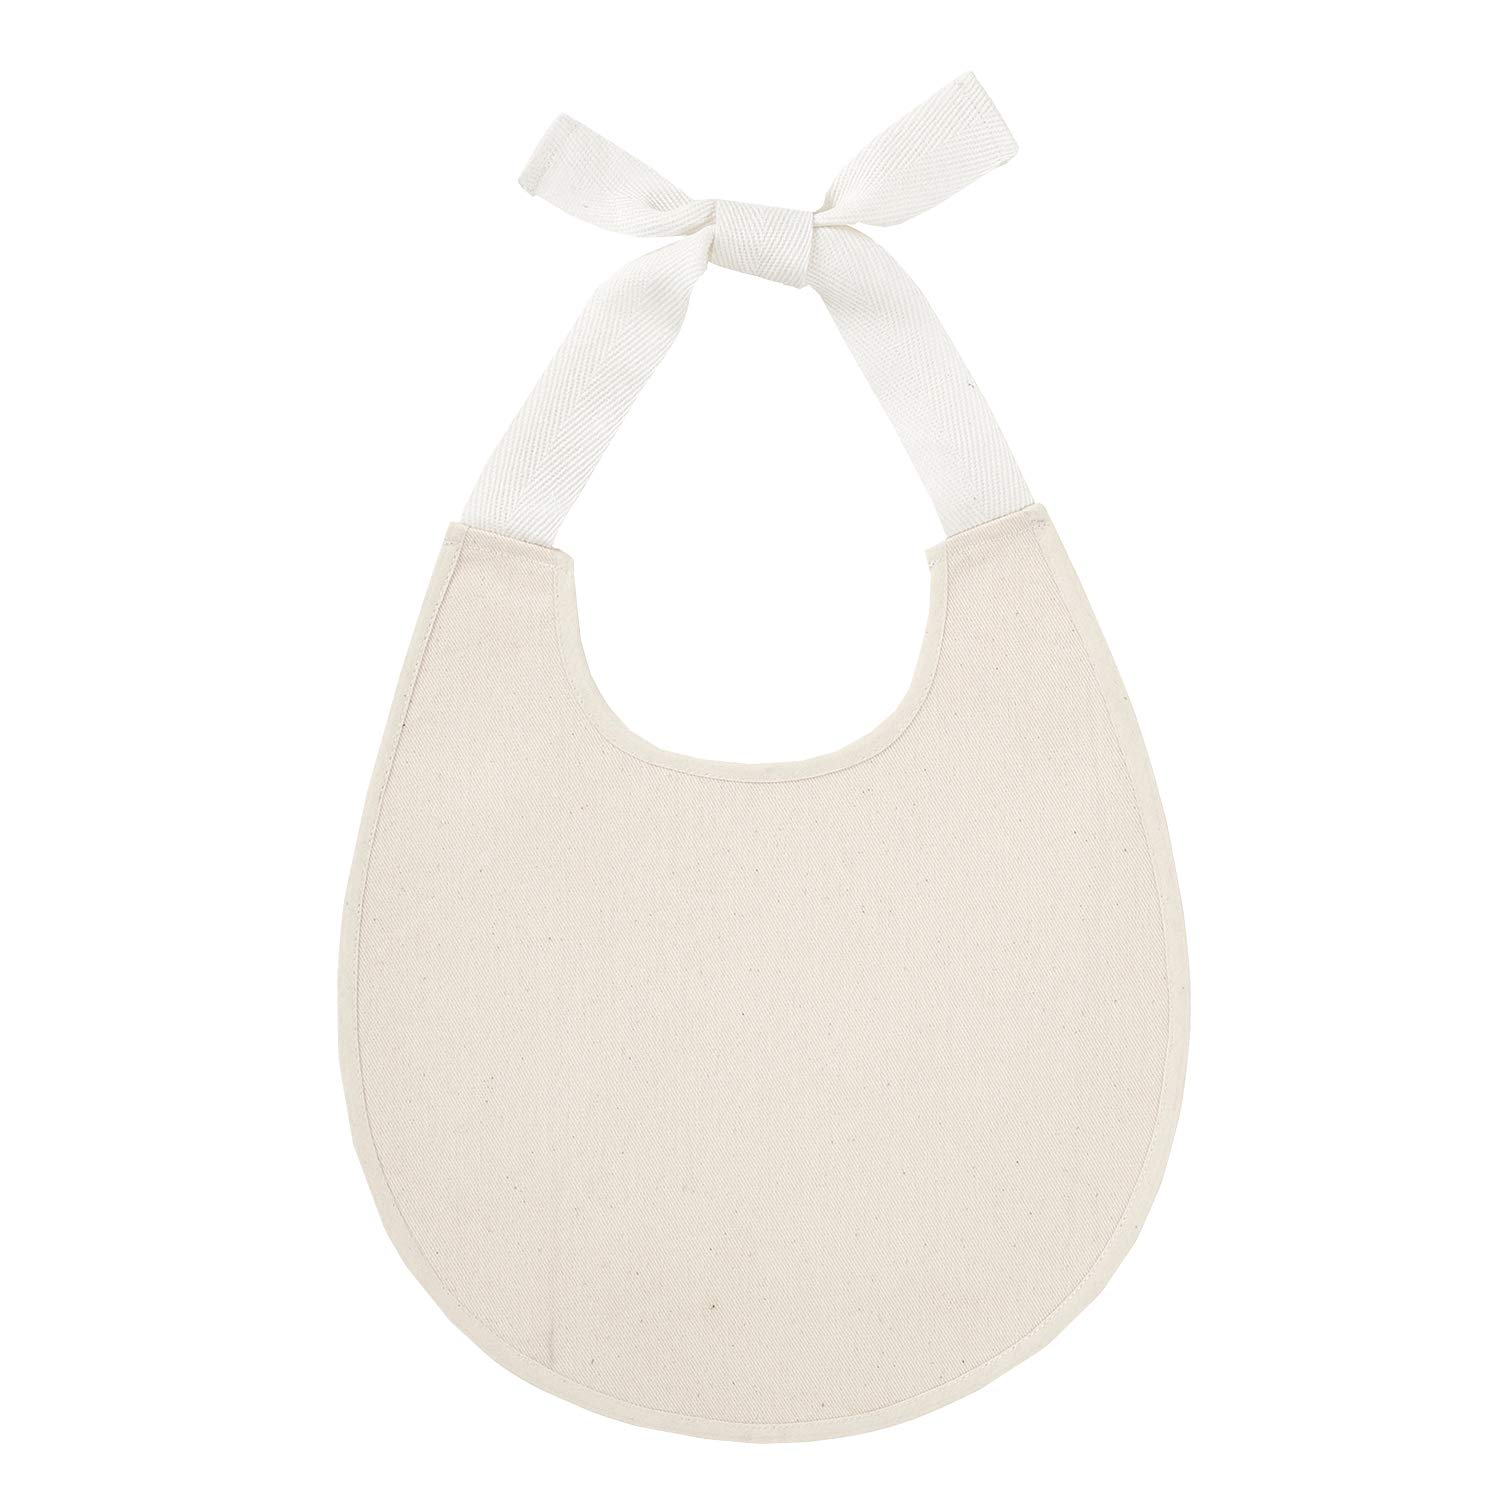 Stephan Baby Heirloomed Collection Cream Cotton Canvas Bib